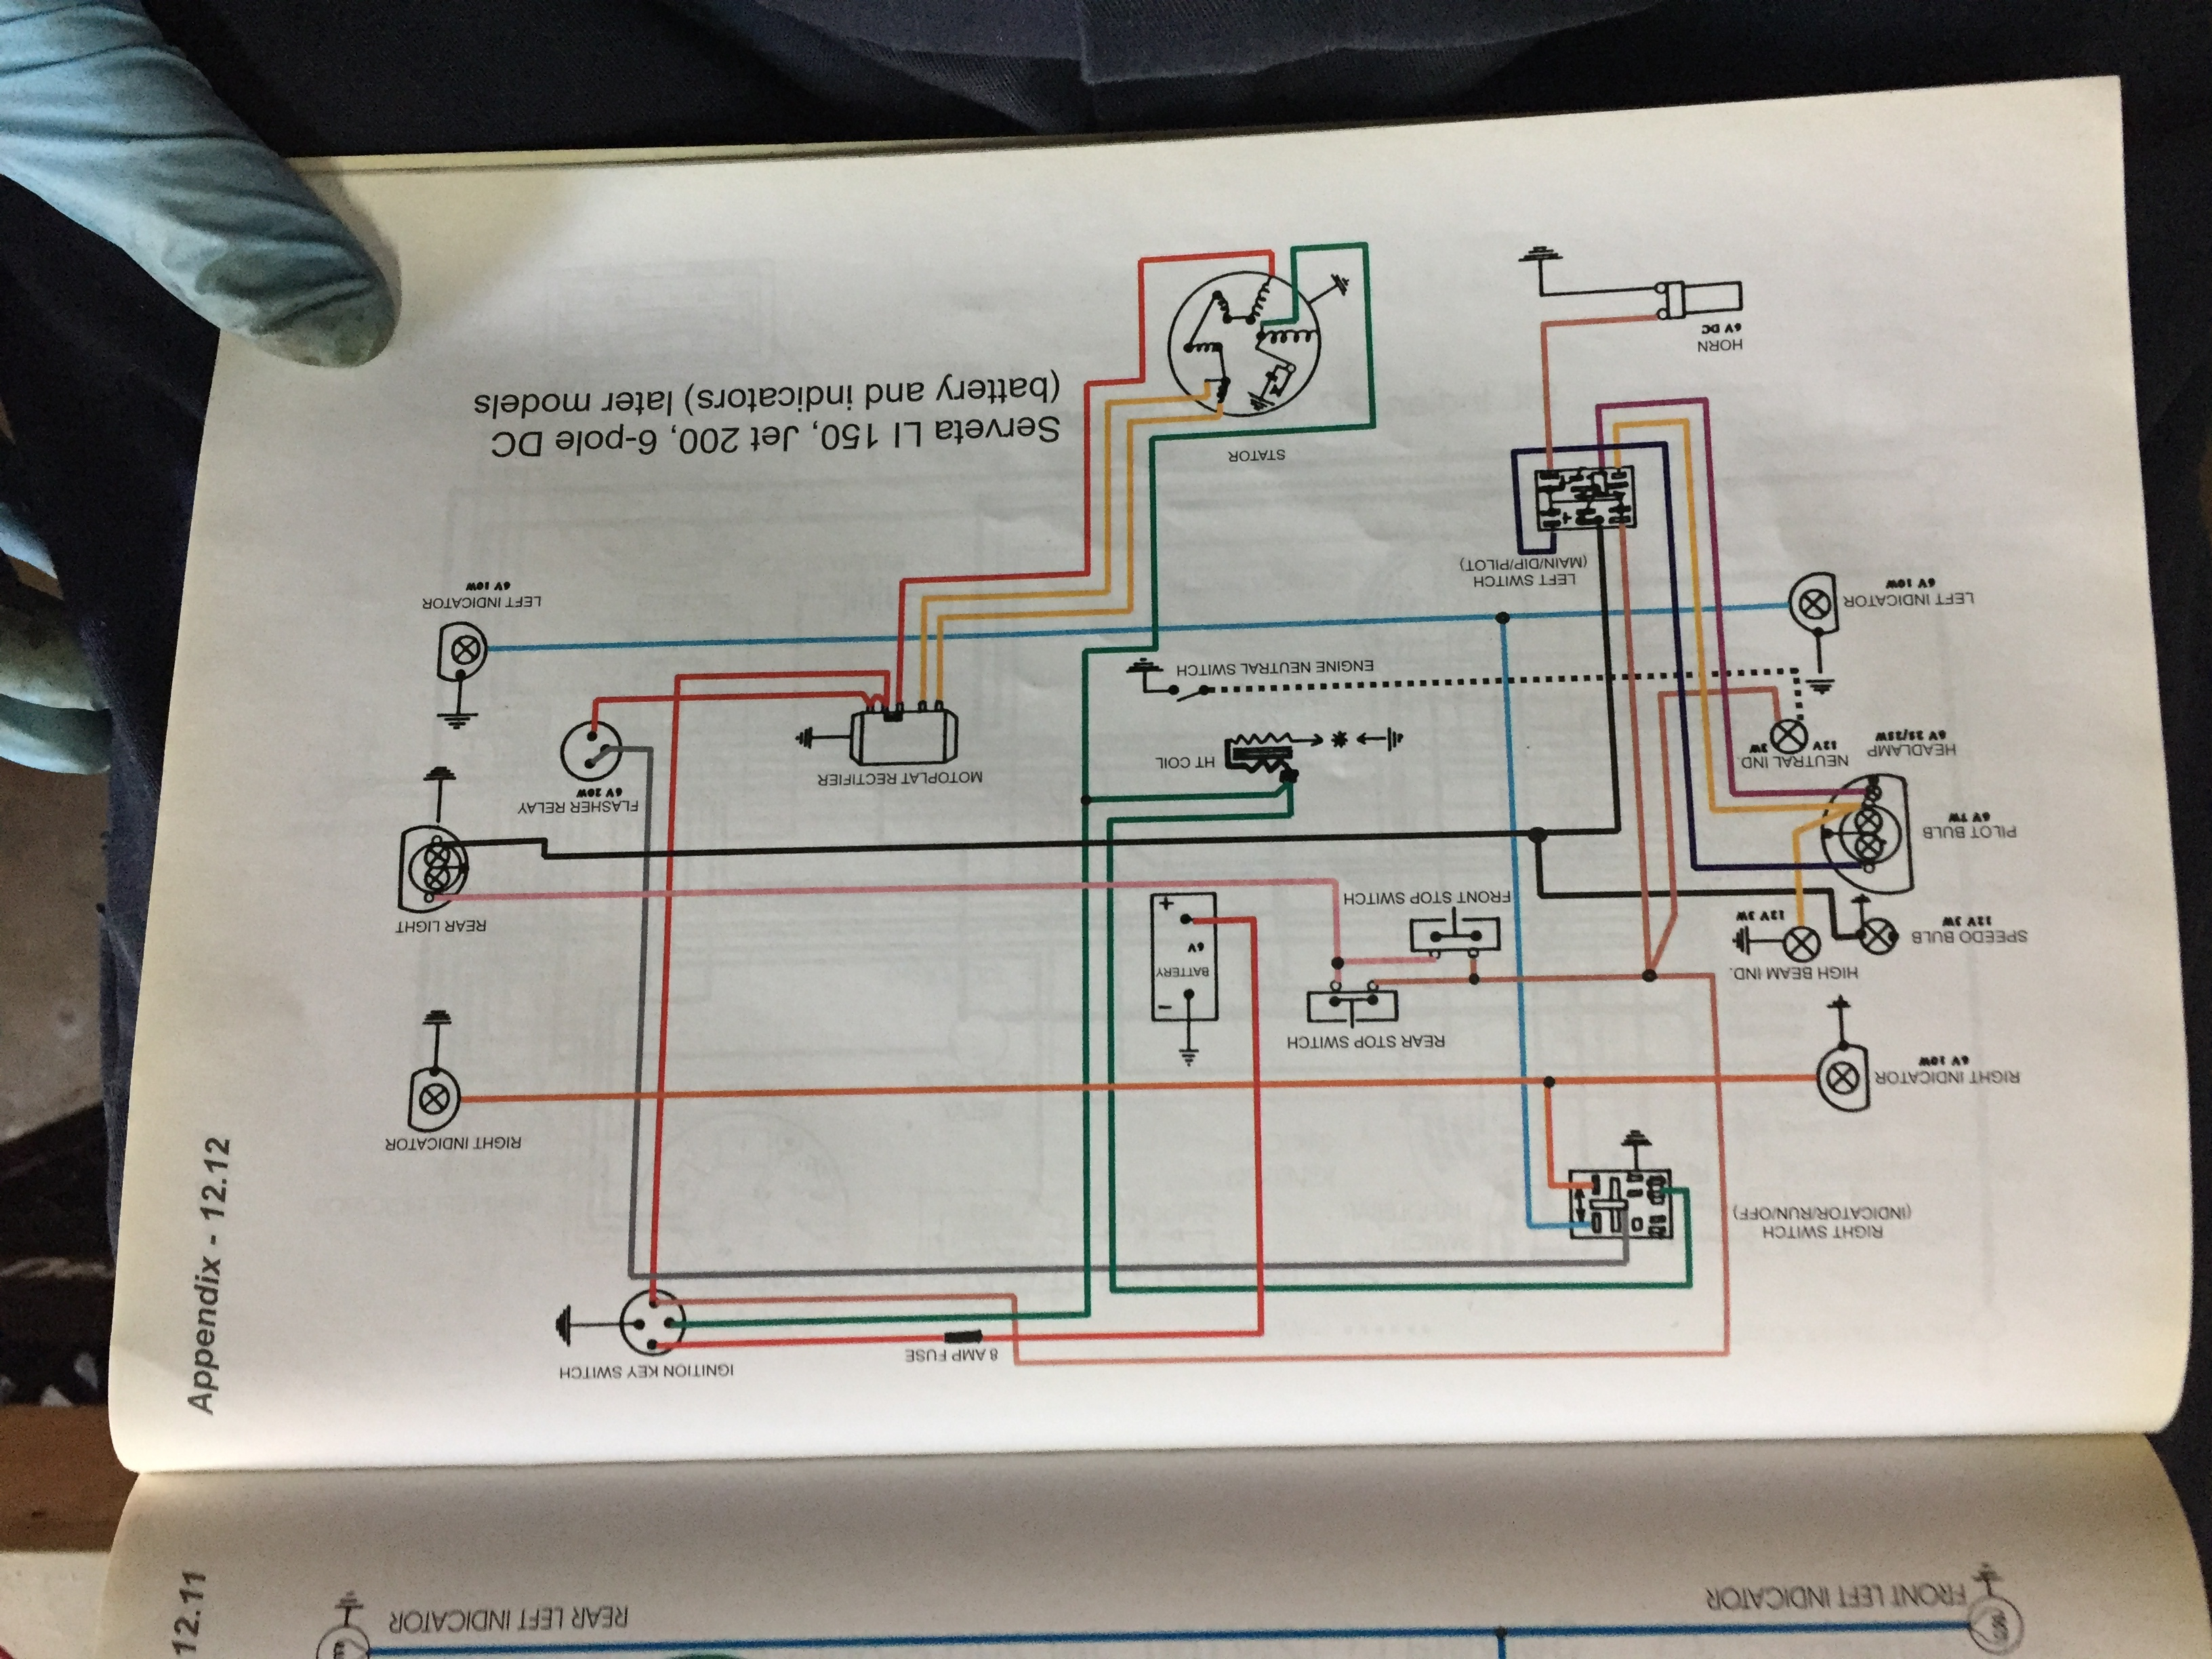 Lambretta ac wiring diagram free download wiring diagram xwiaw ac free download wiring diagram serveta ac wiring series 1 2 3 to gp lambretta club asfbconference2016 Images